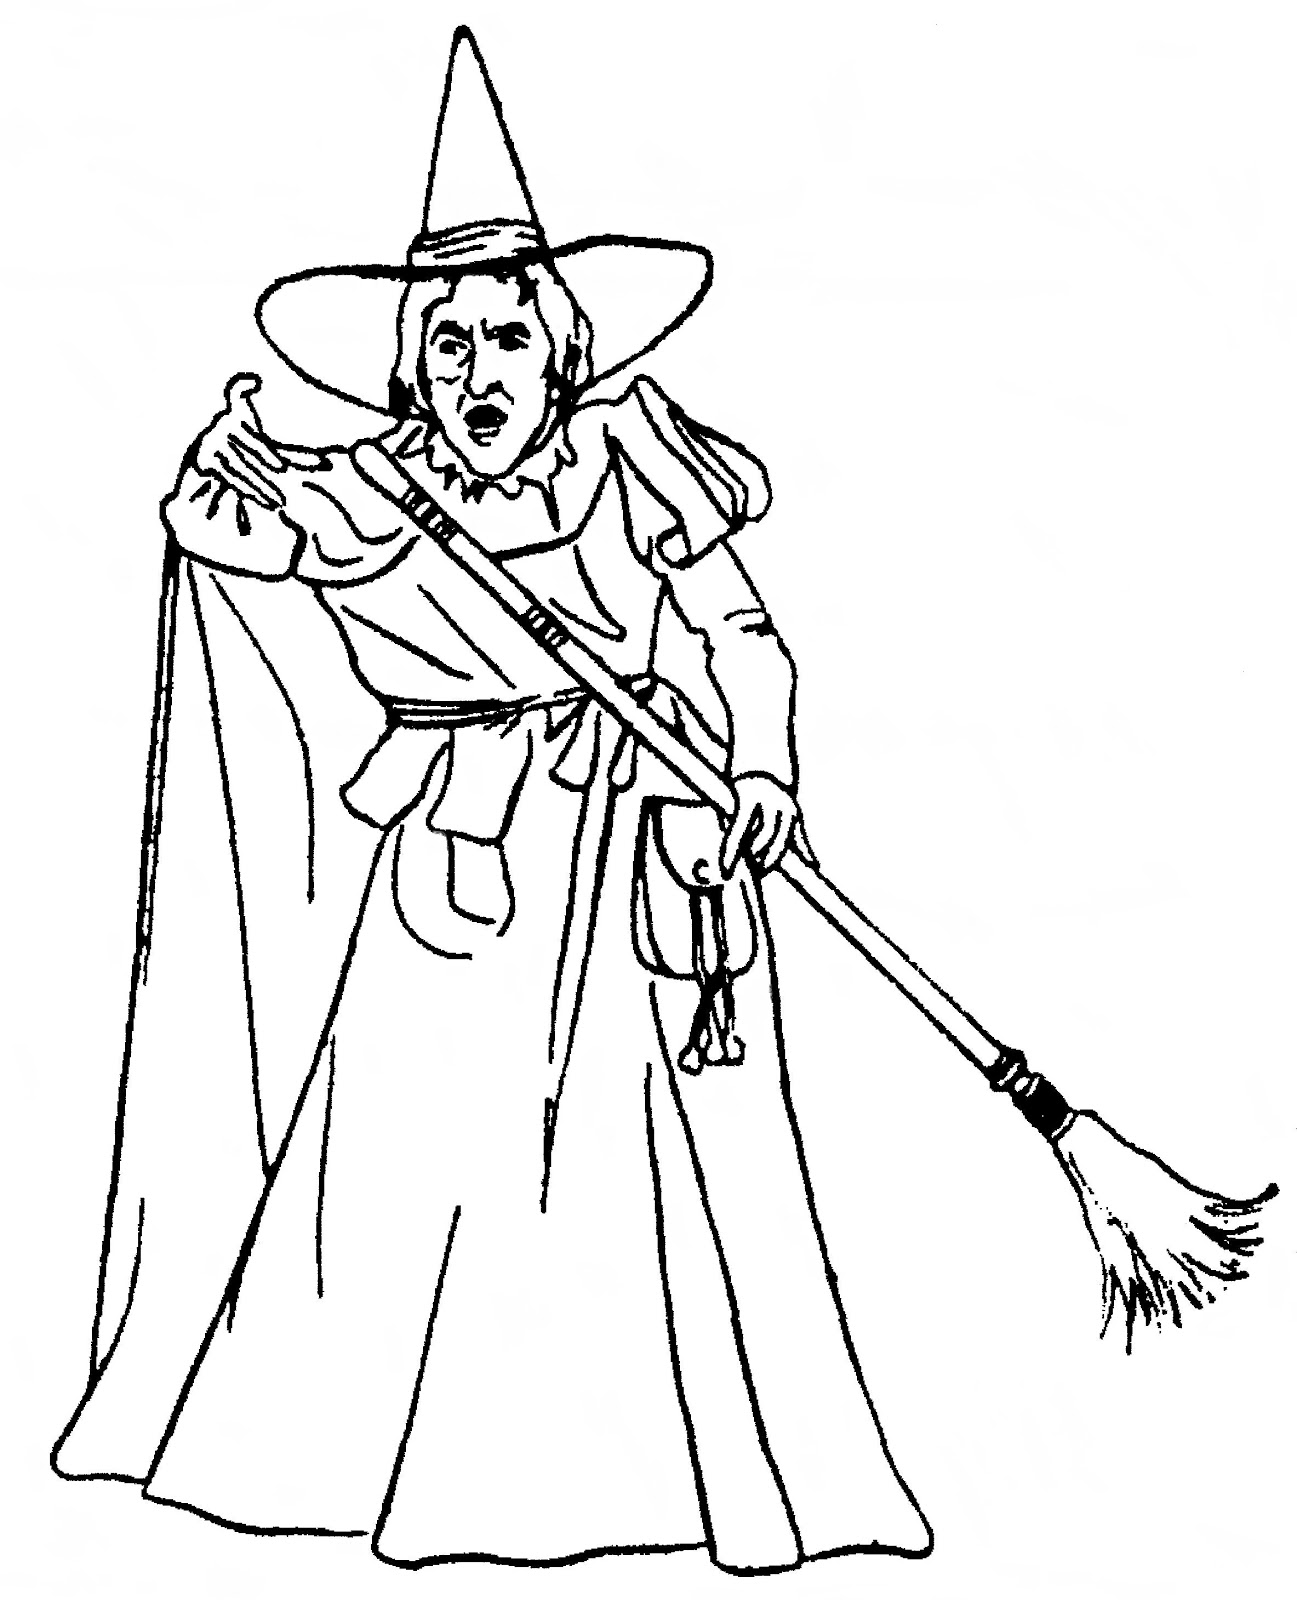 Glinda The Good Witch Coloring Pages At Getdrawings Com Free For